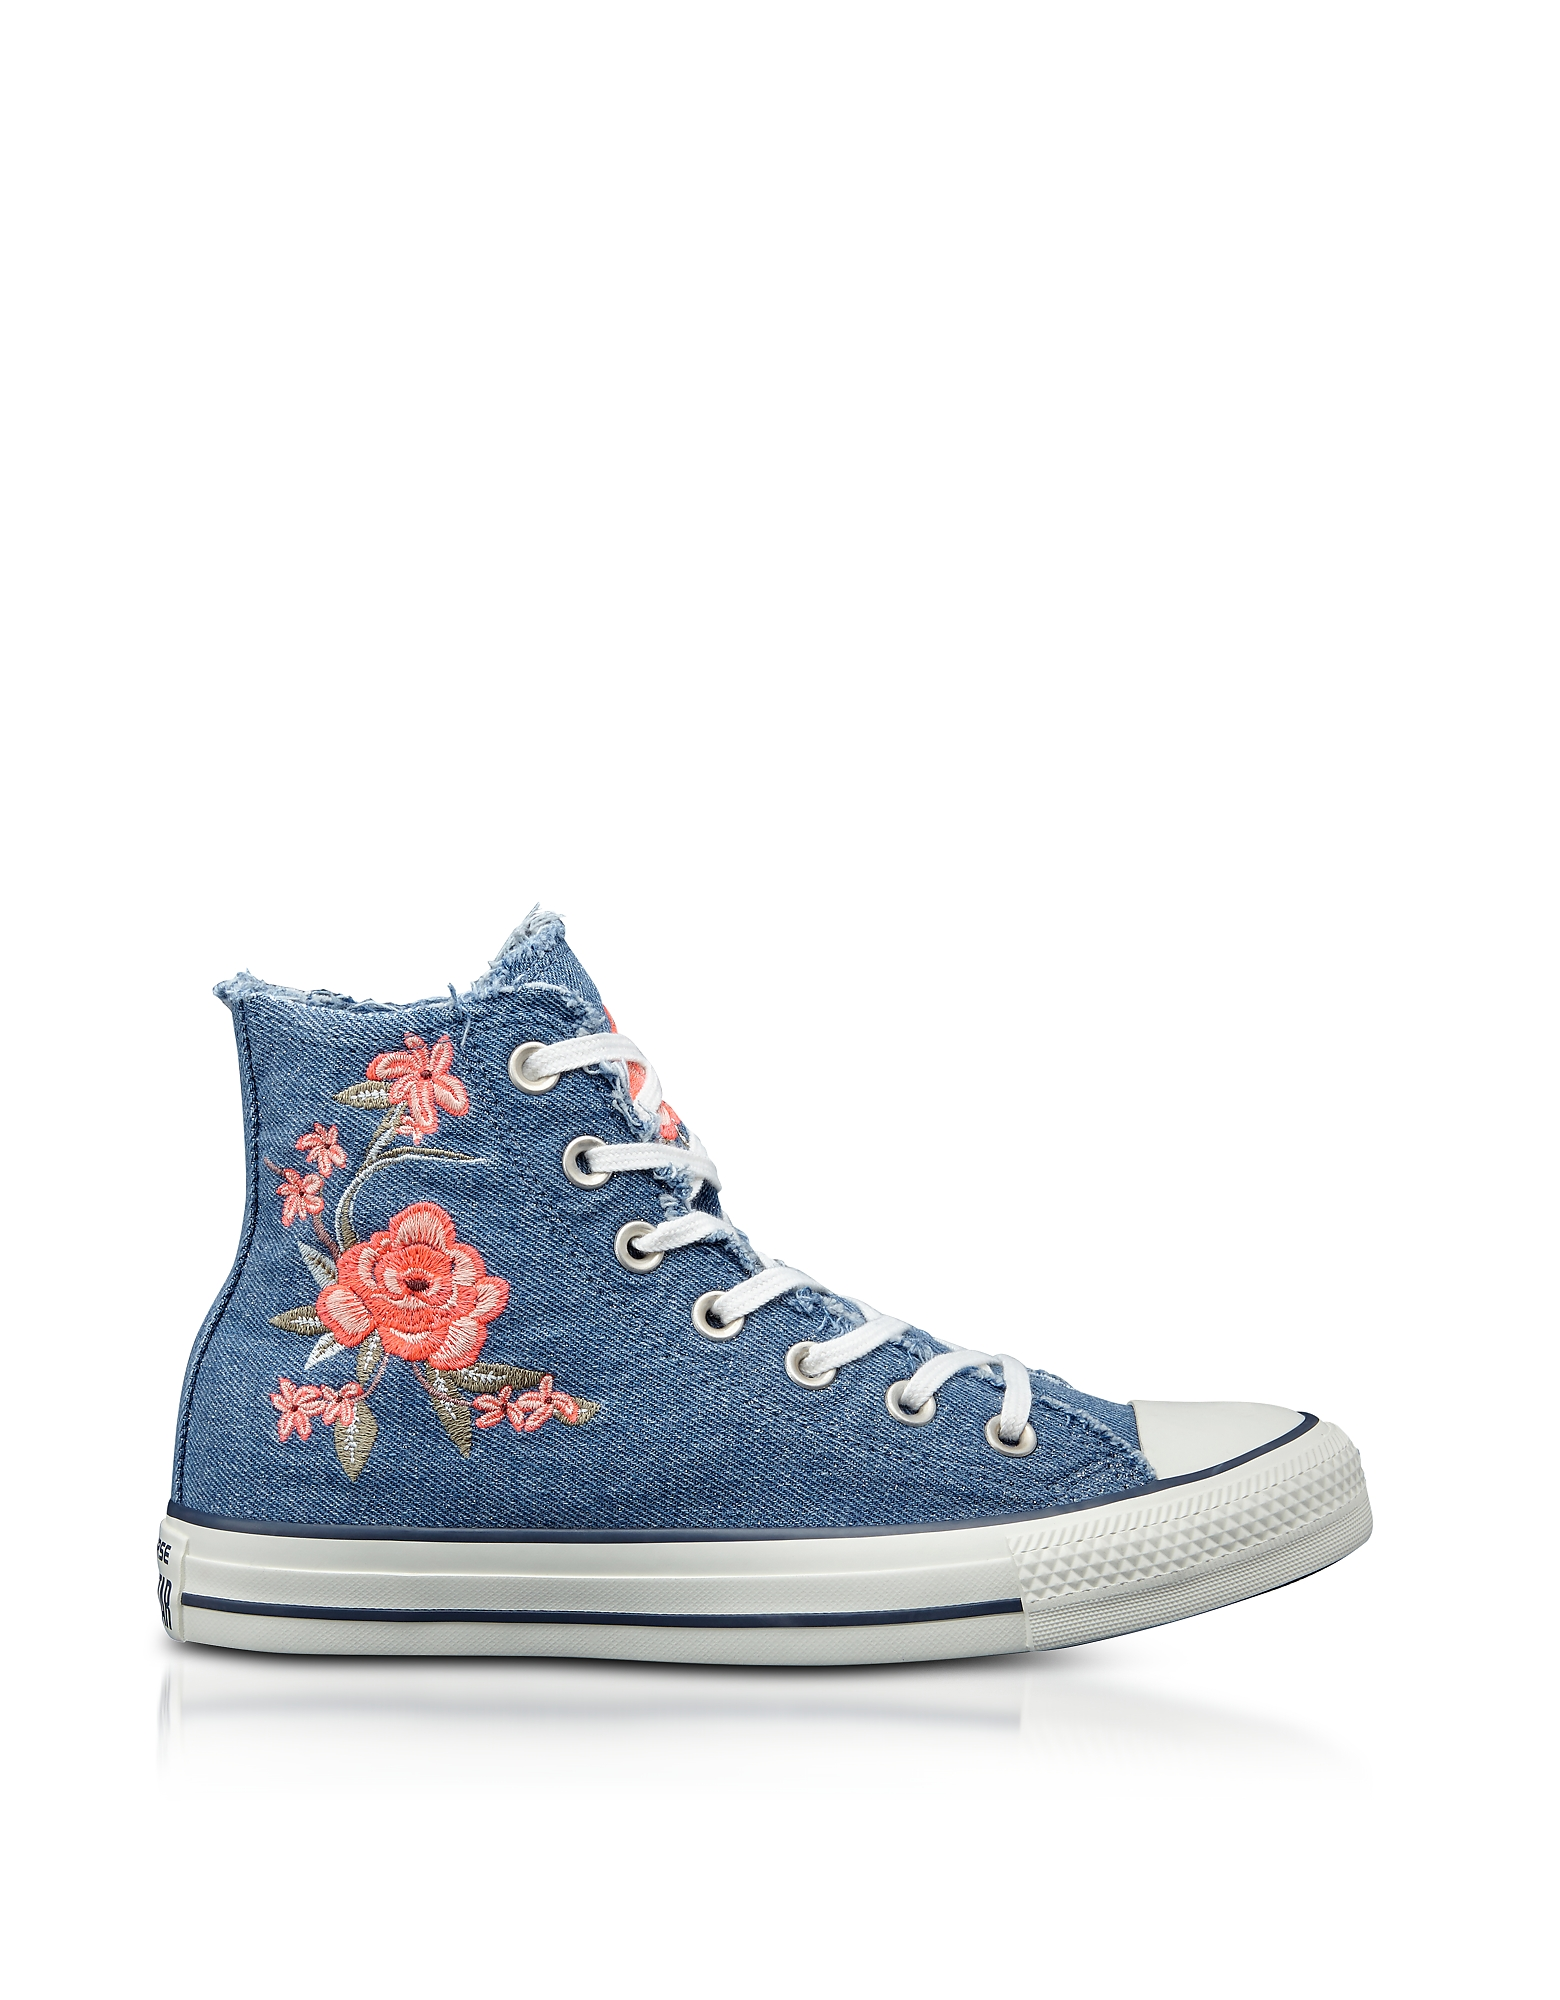 Converse Limited Edition Shoes, Chuck Taylor All Star High Denim Frayed Flower Women's Sneakers